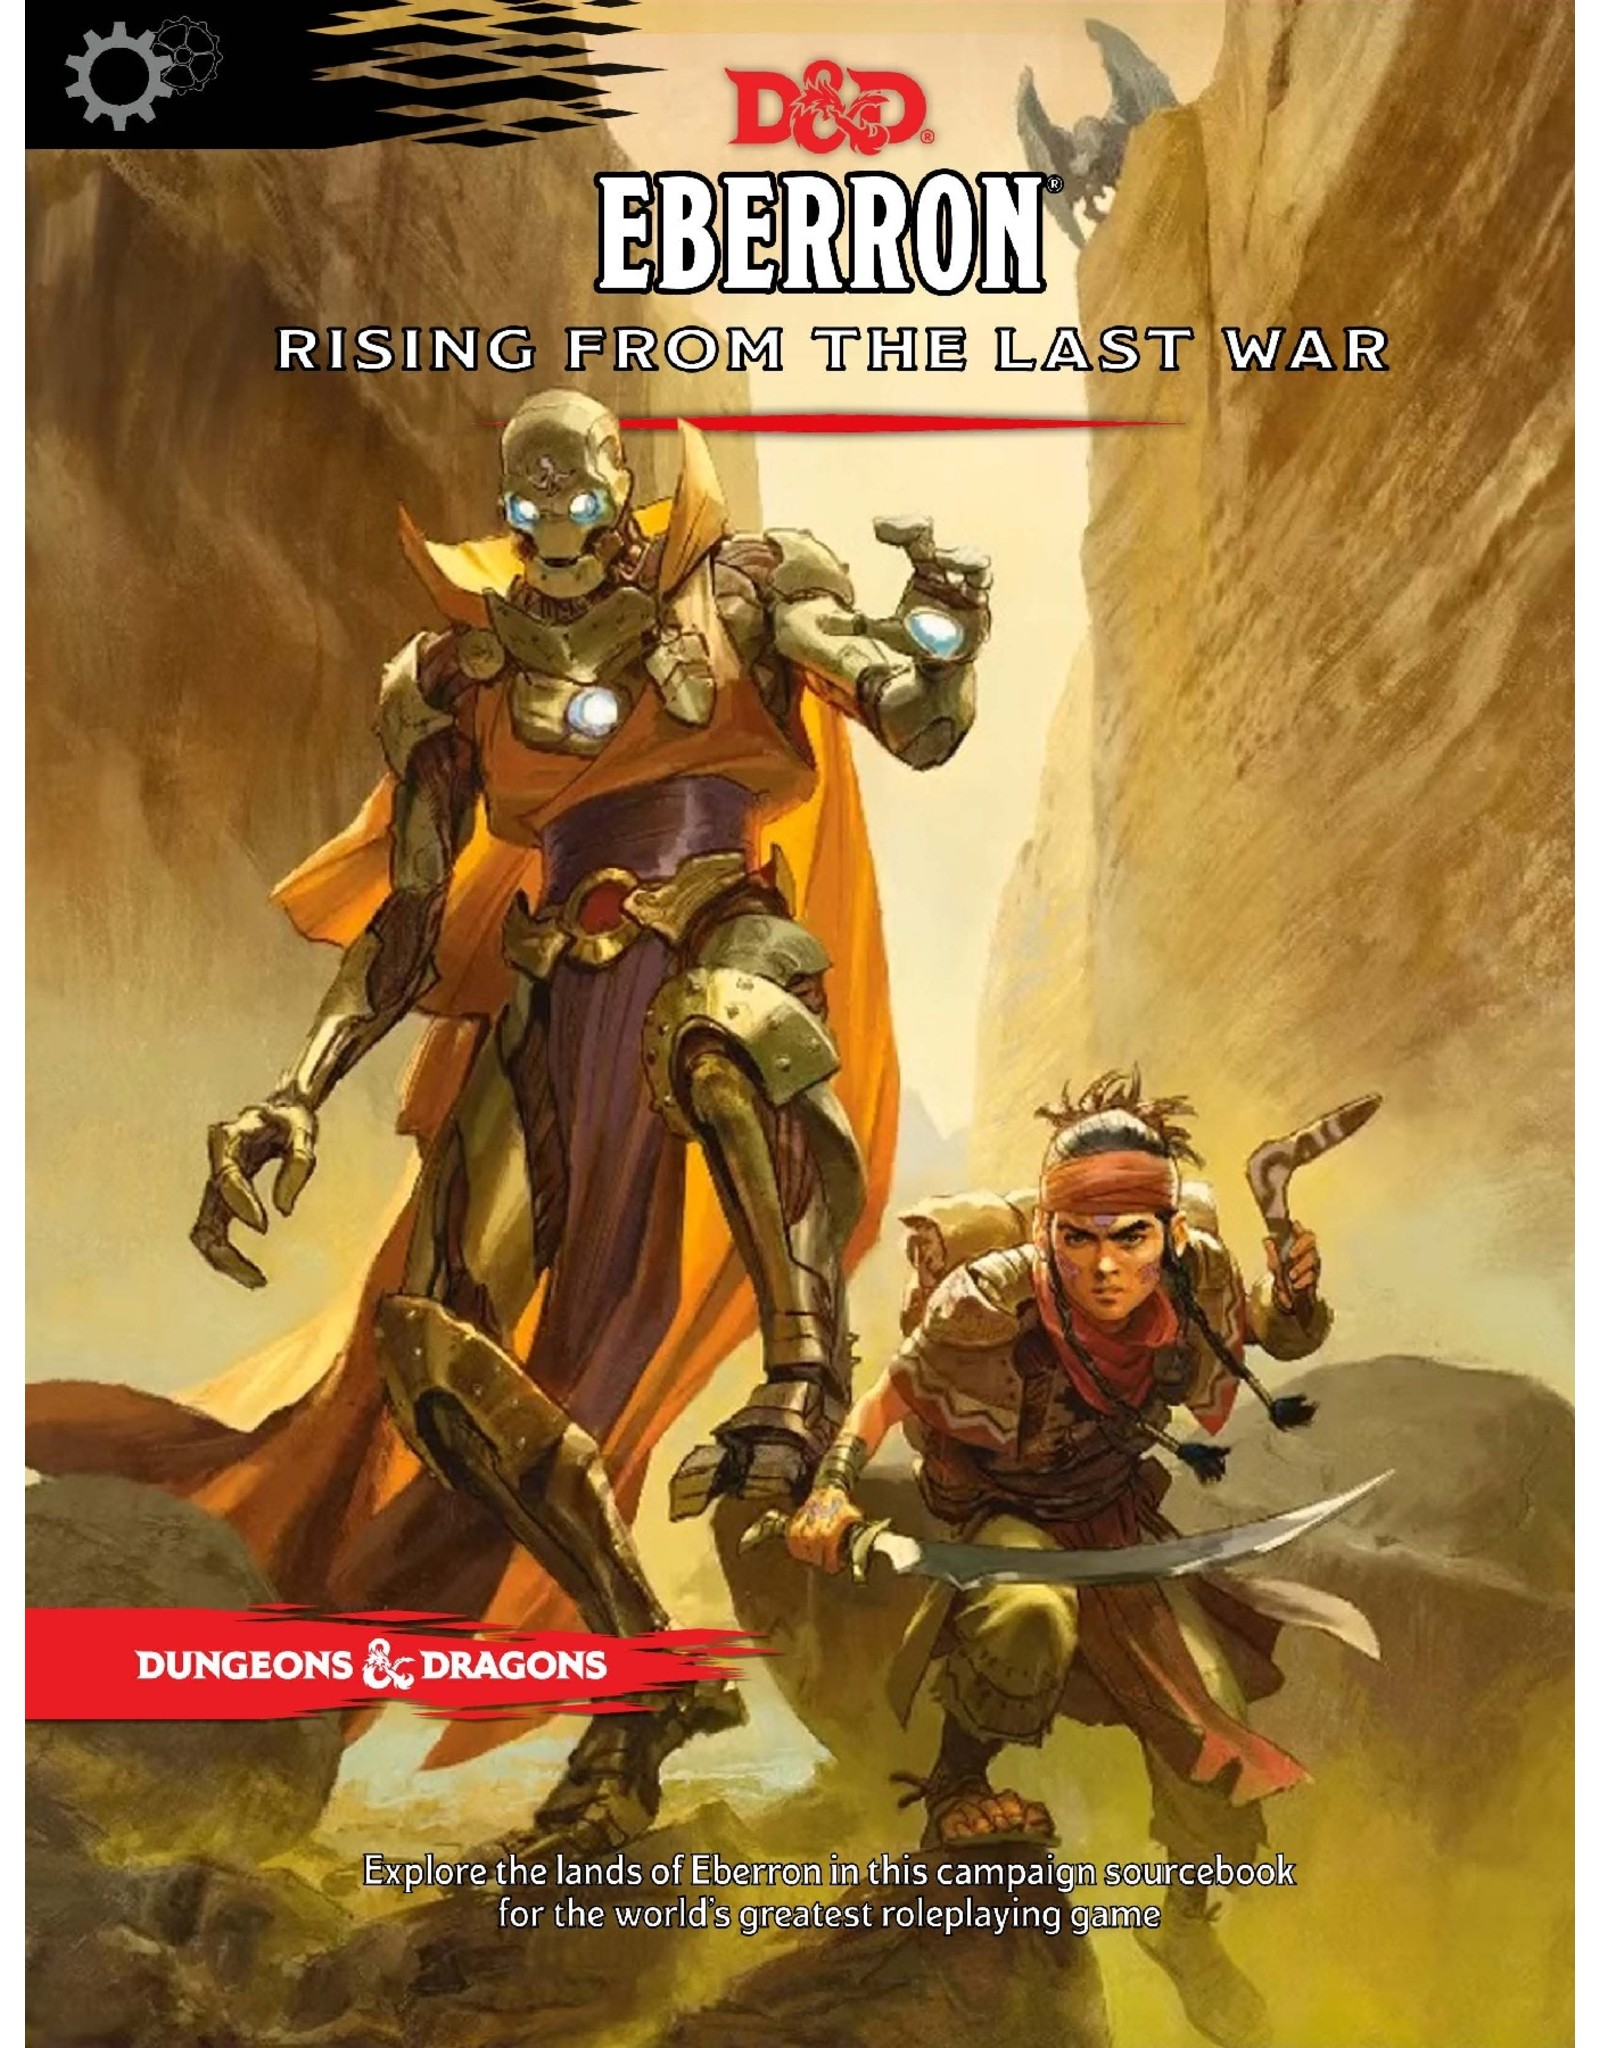 Dungeons & Dragons D&D Eberron Rising from the Last War (Regular Cover)